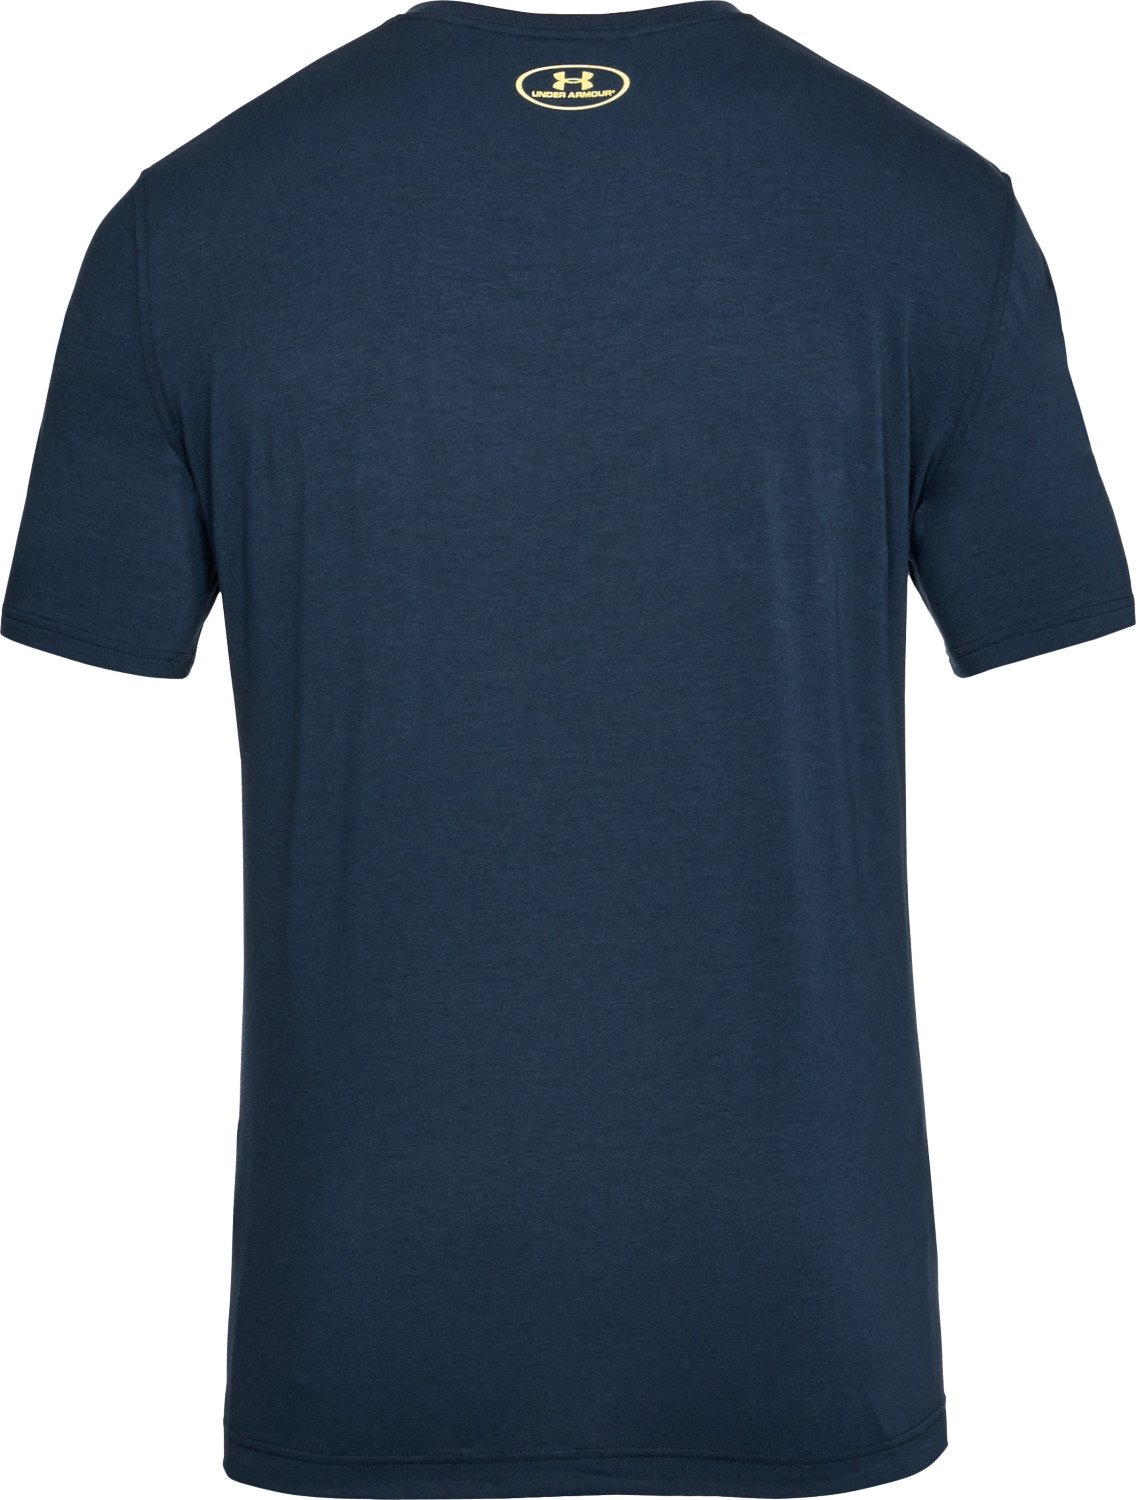 Under Armour Men's Mahi Field Tested T-shirt - view number 2